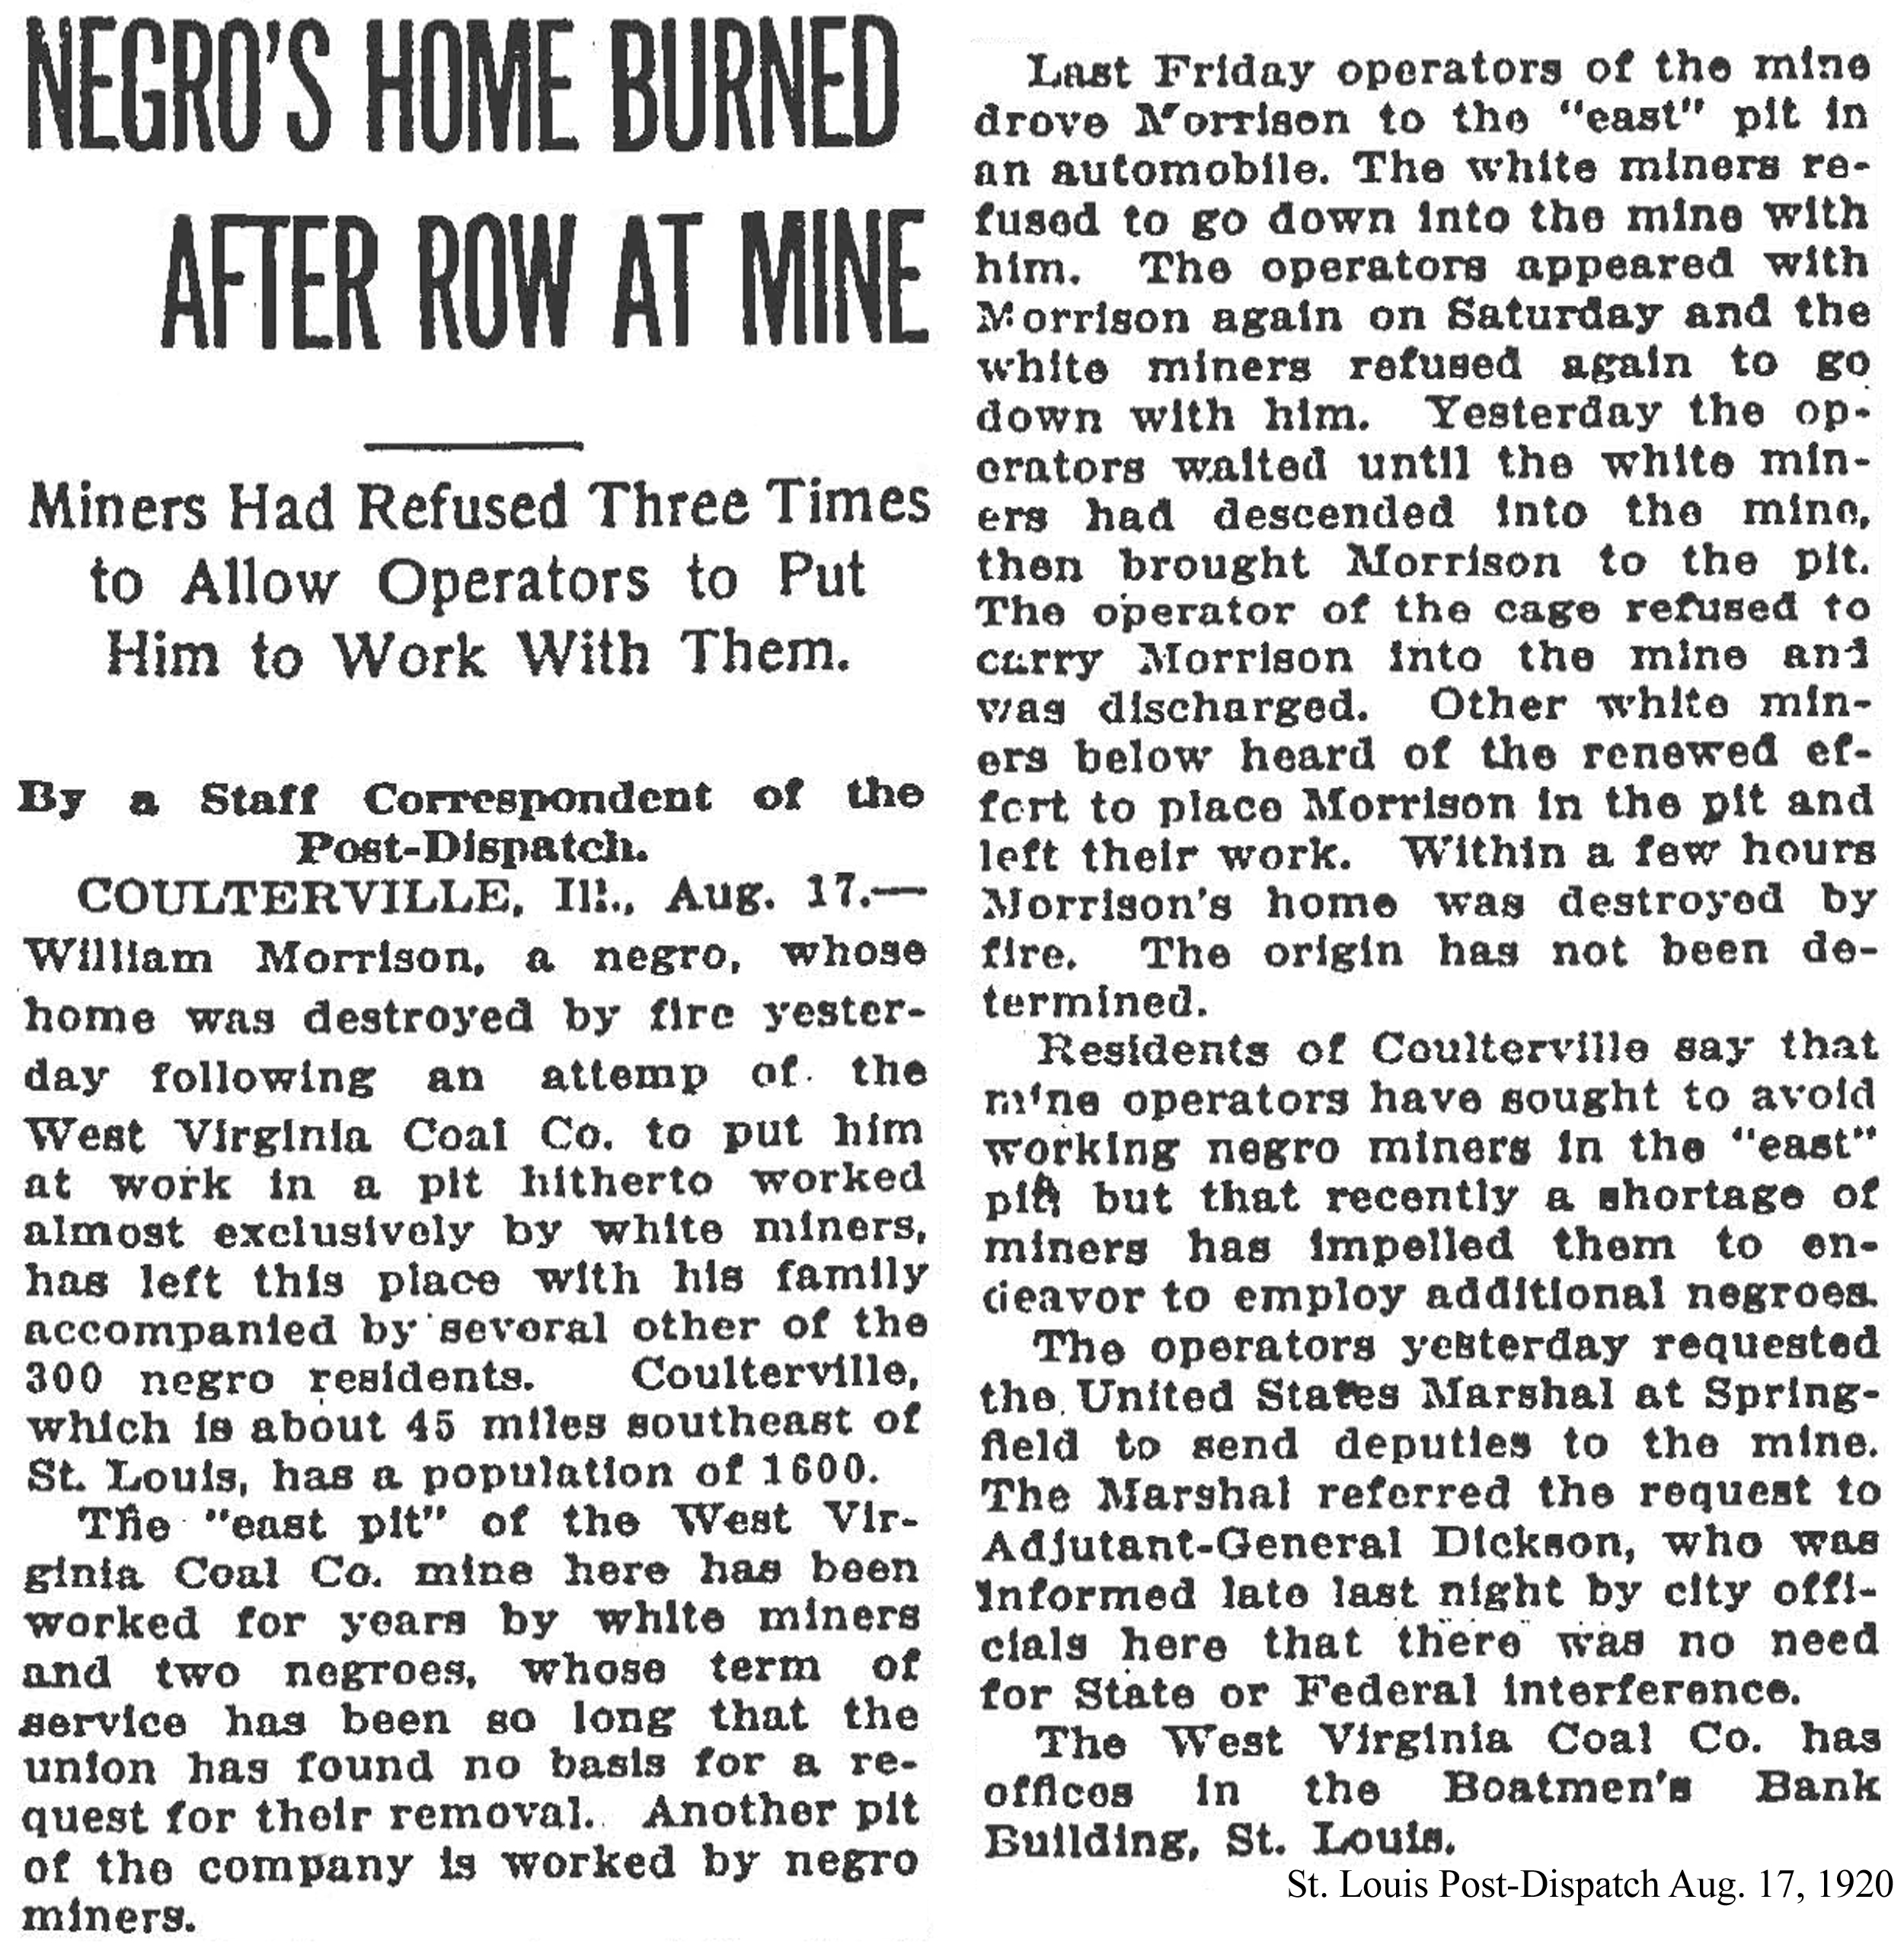 08-17-1920 negro's home burned small